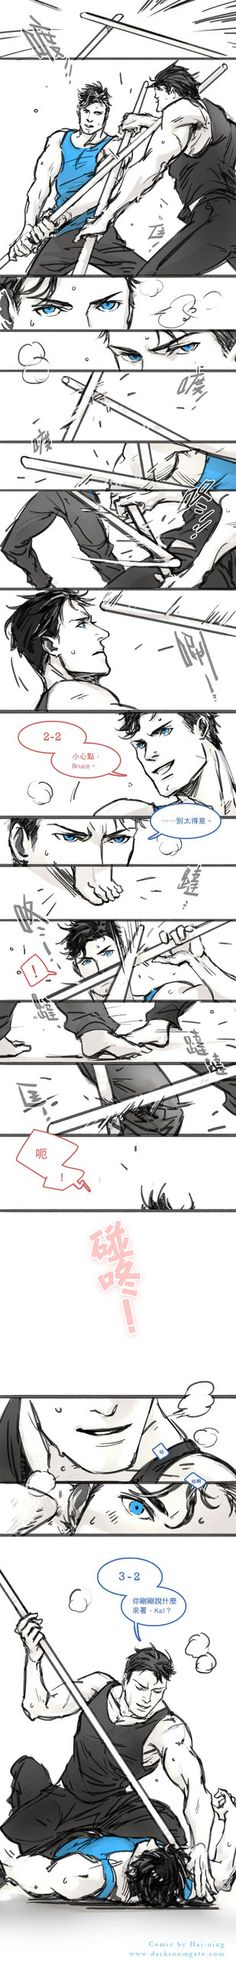 Pacific Rim AU - SuperBat comic by Haining-art